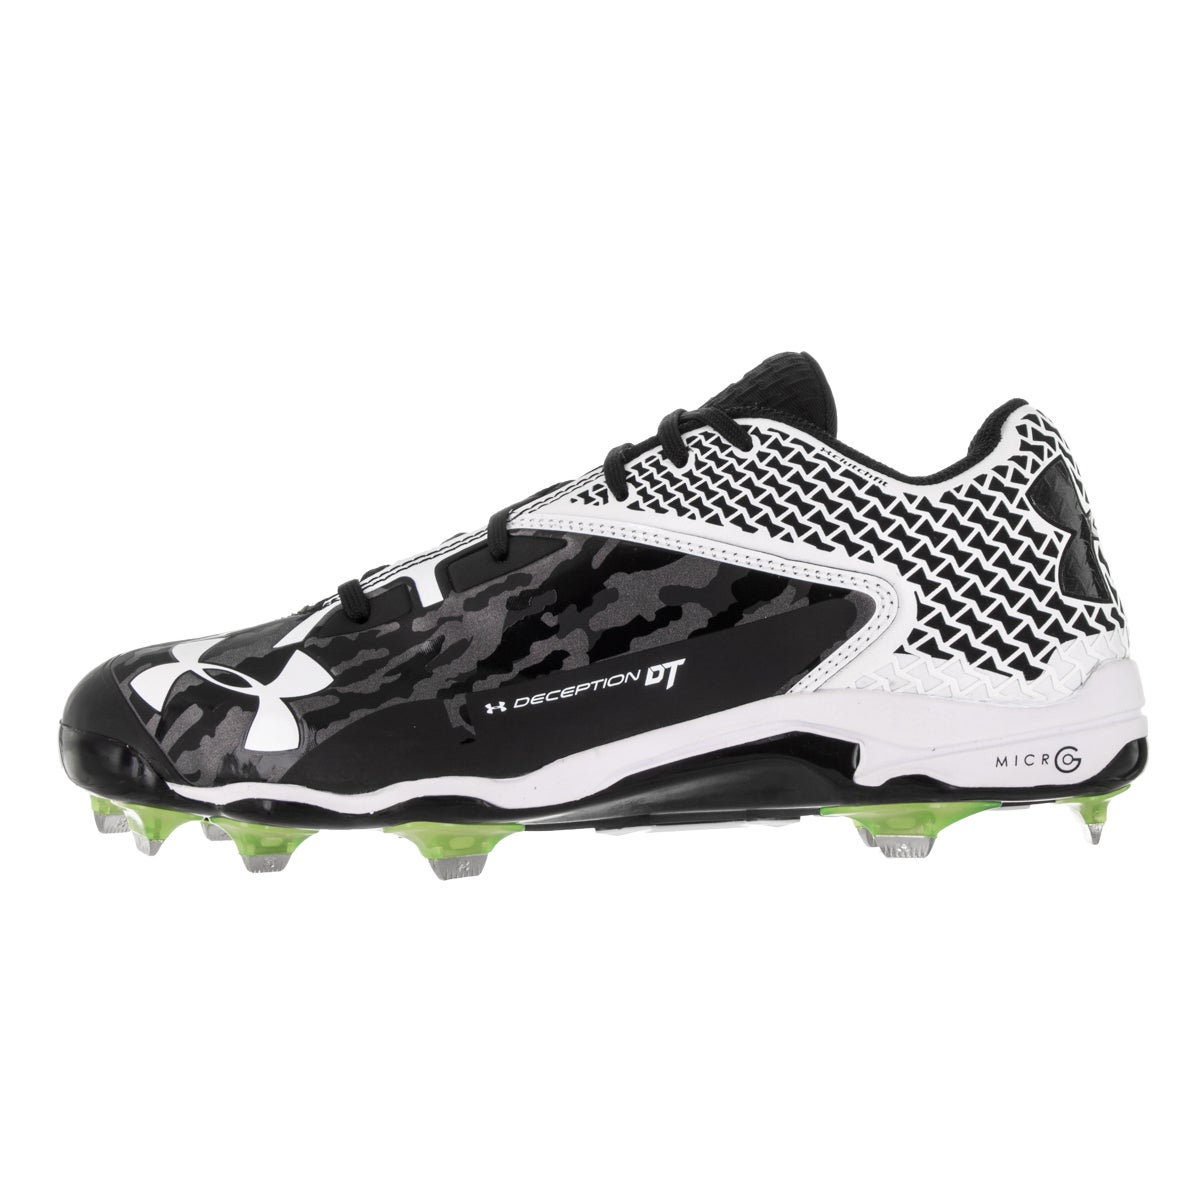 fa1a8f147dfd Shop Under Armour Men's UA Deception Low Black Fabric Baseball Cleat - Free  Shipping Today - Overstock - 13404569